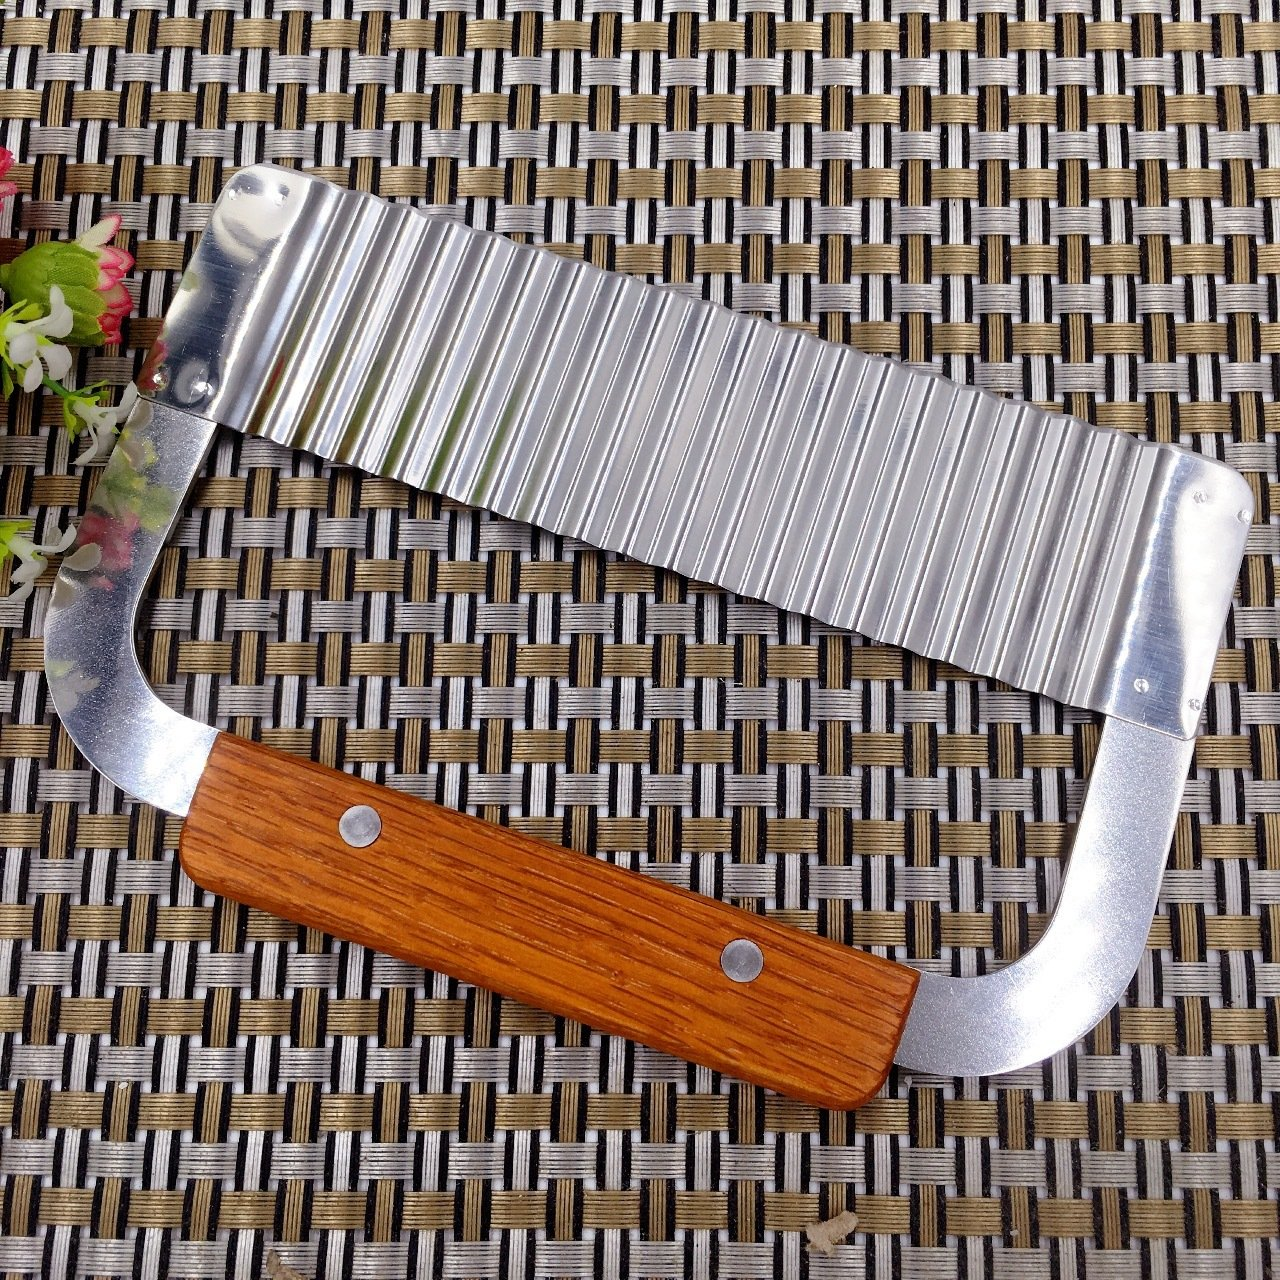 Wavy Crinkle Cutting Tool Vegetable French Fry Slicer Stainless Steel Blade Wooden Handle Serrator Salad Chopping Knife,Set of 2